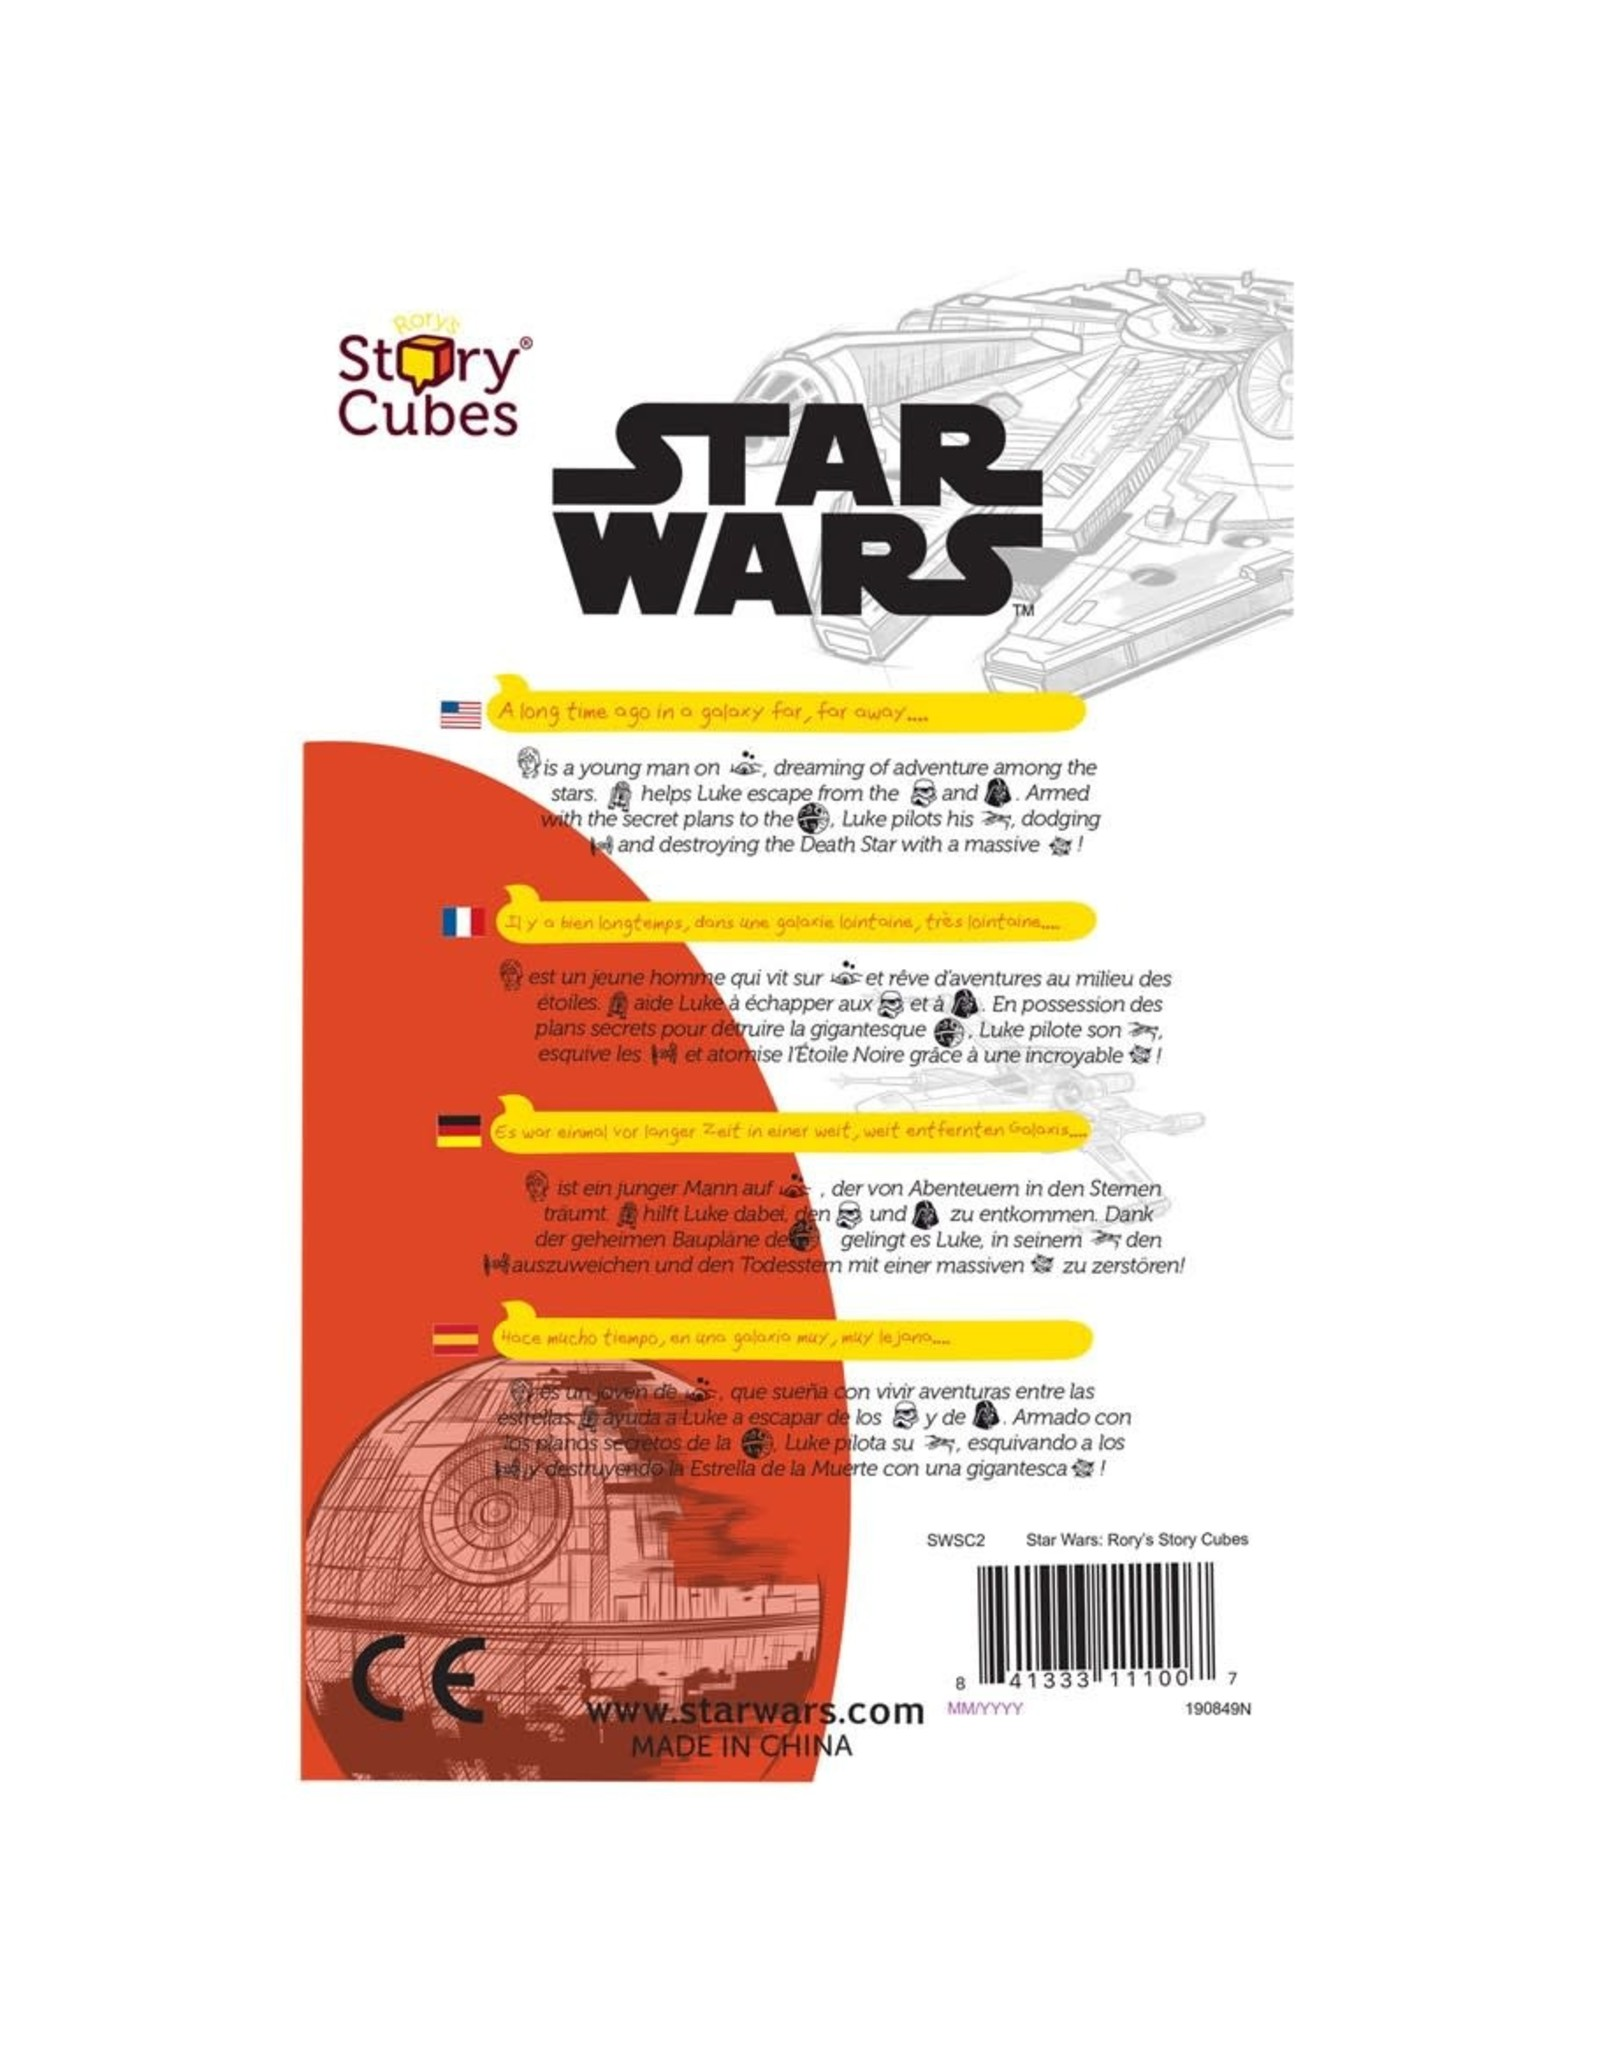 Rory's Story Cubes: Star Wars